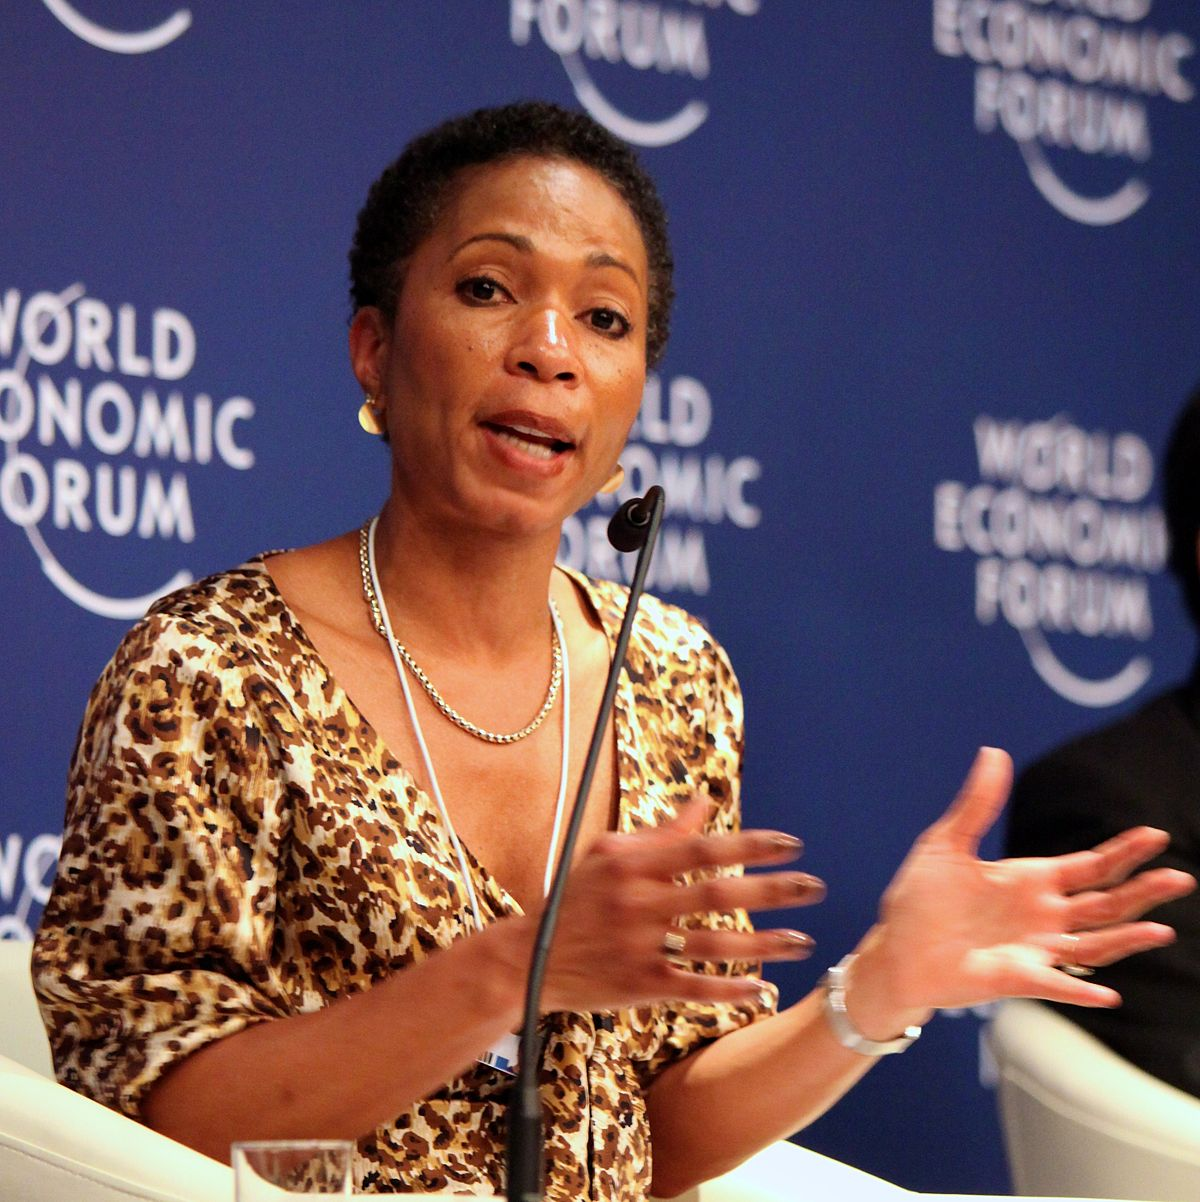 Px Helene D Gayle World Economic Forum On East Asia Crop on New York Health Care